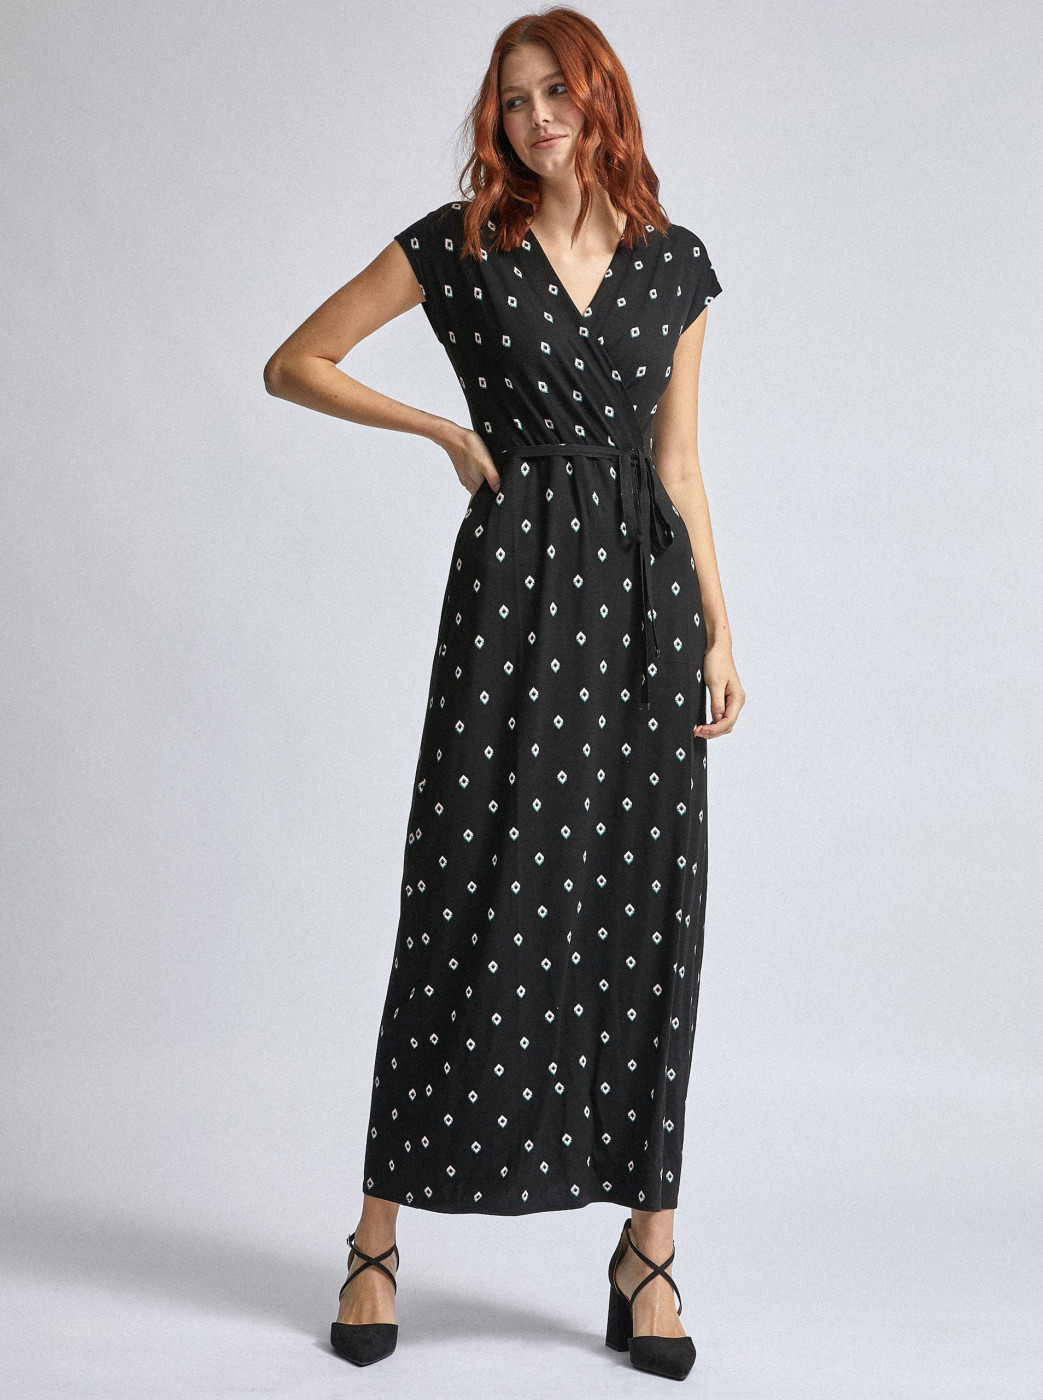 Black patterned maxi dress by Dorothy Perkins